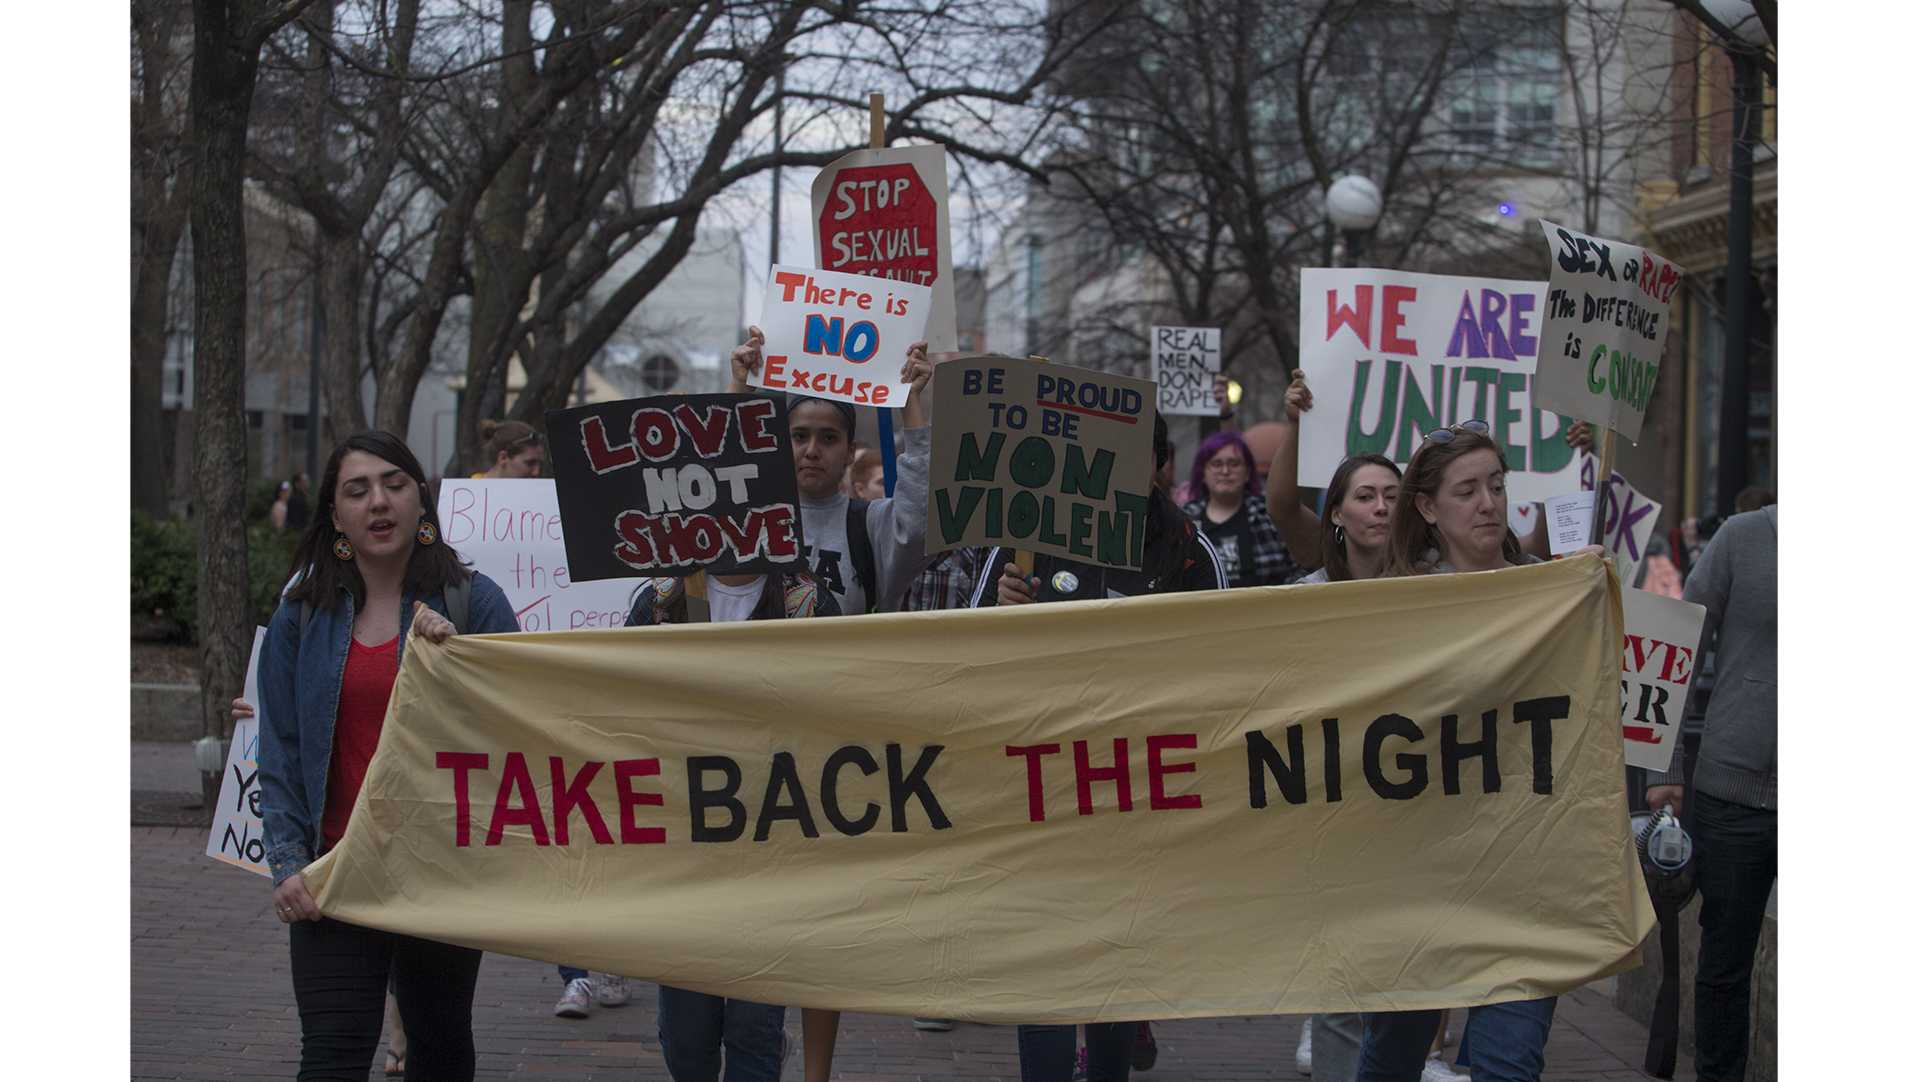 Students march through the Ped Mall during the Take Back the Night Rally on the Pentacrest on Tuesday, Apr. 24, 2018. Various sexual assault support organizations, including WRAC and Monsoon, came together to protest the prevalence of sexual assault in colleges. (Katie Goodale/The Daily Iowan)